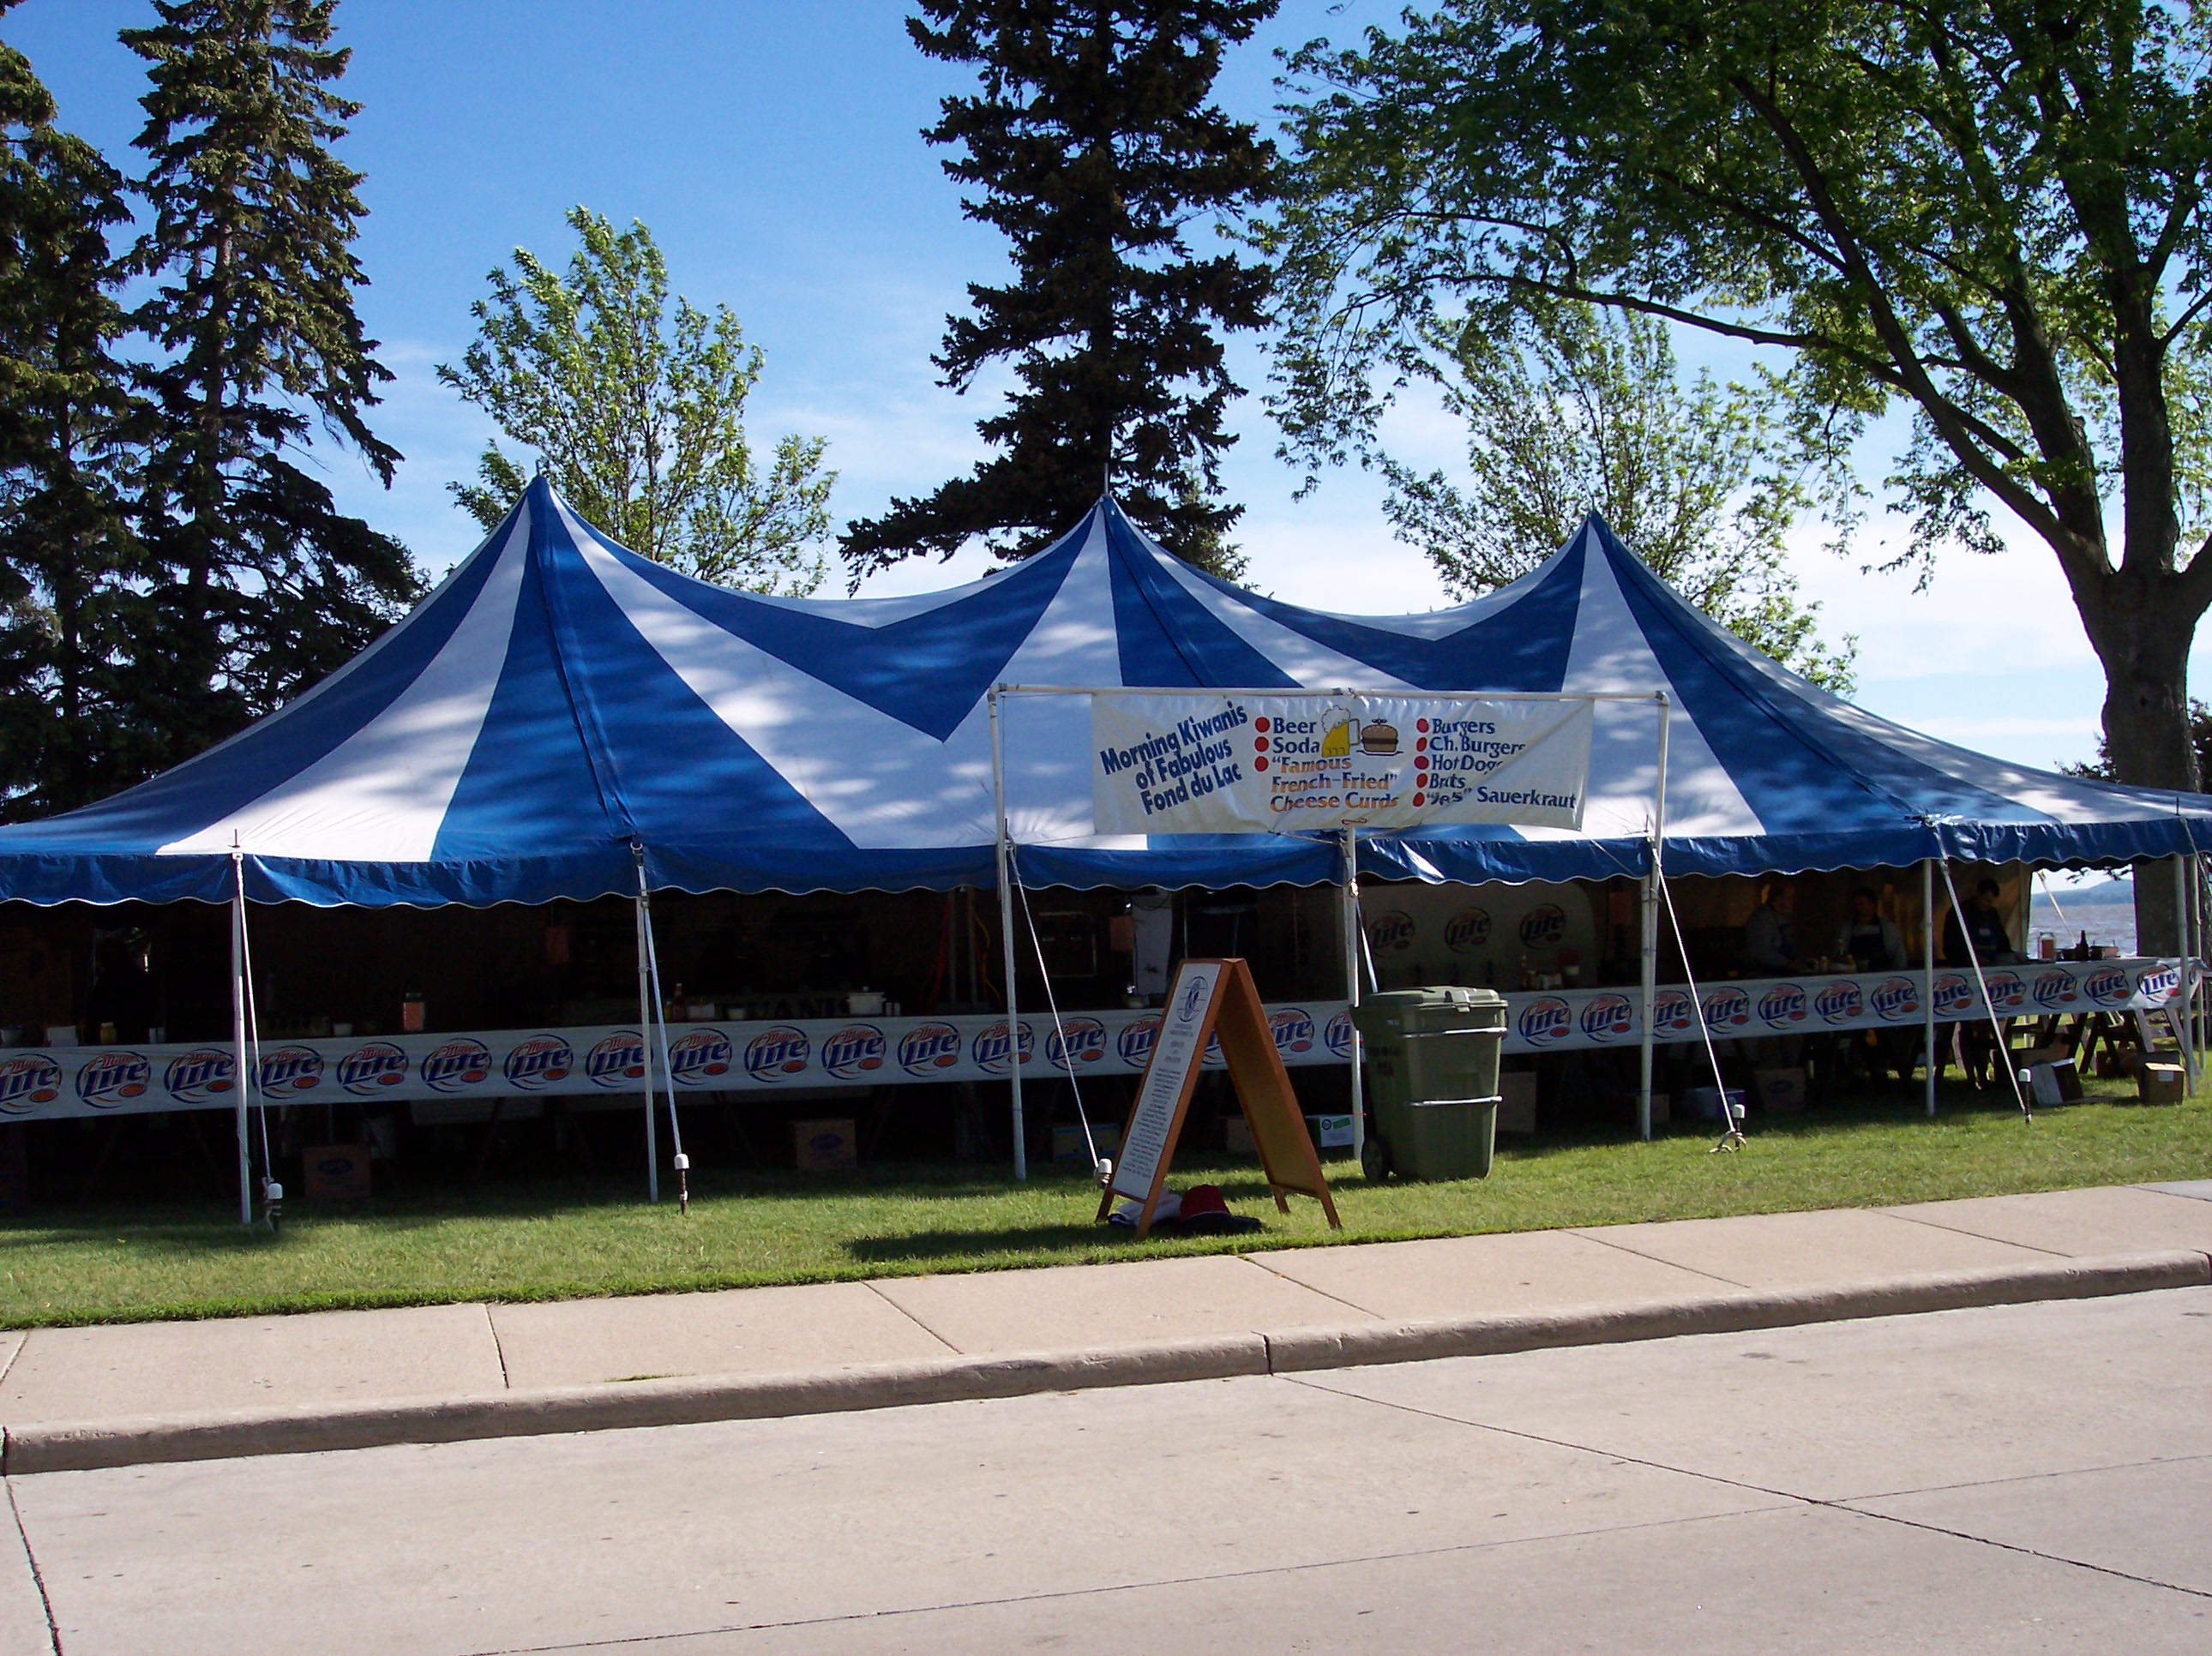 Kiwanis Walleye Weekend tent